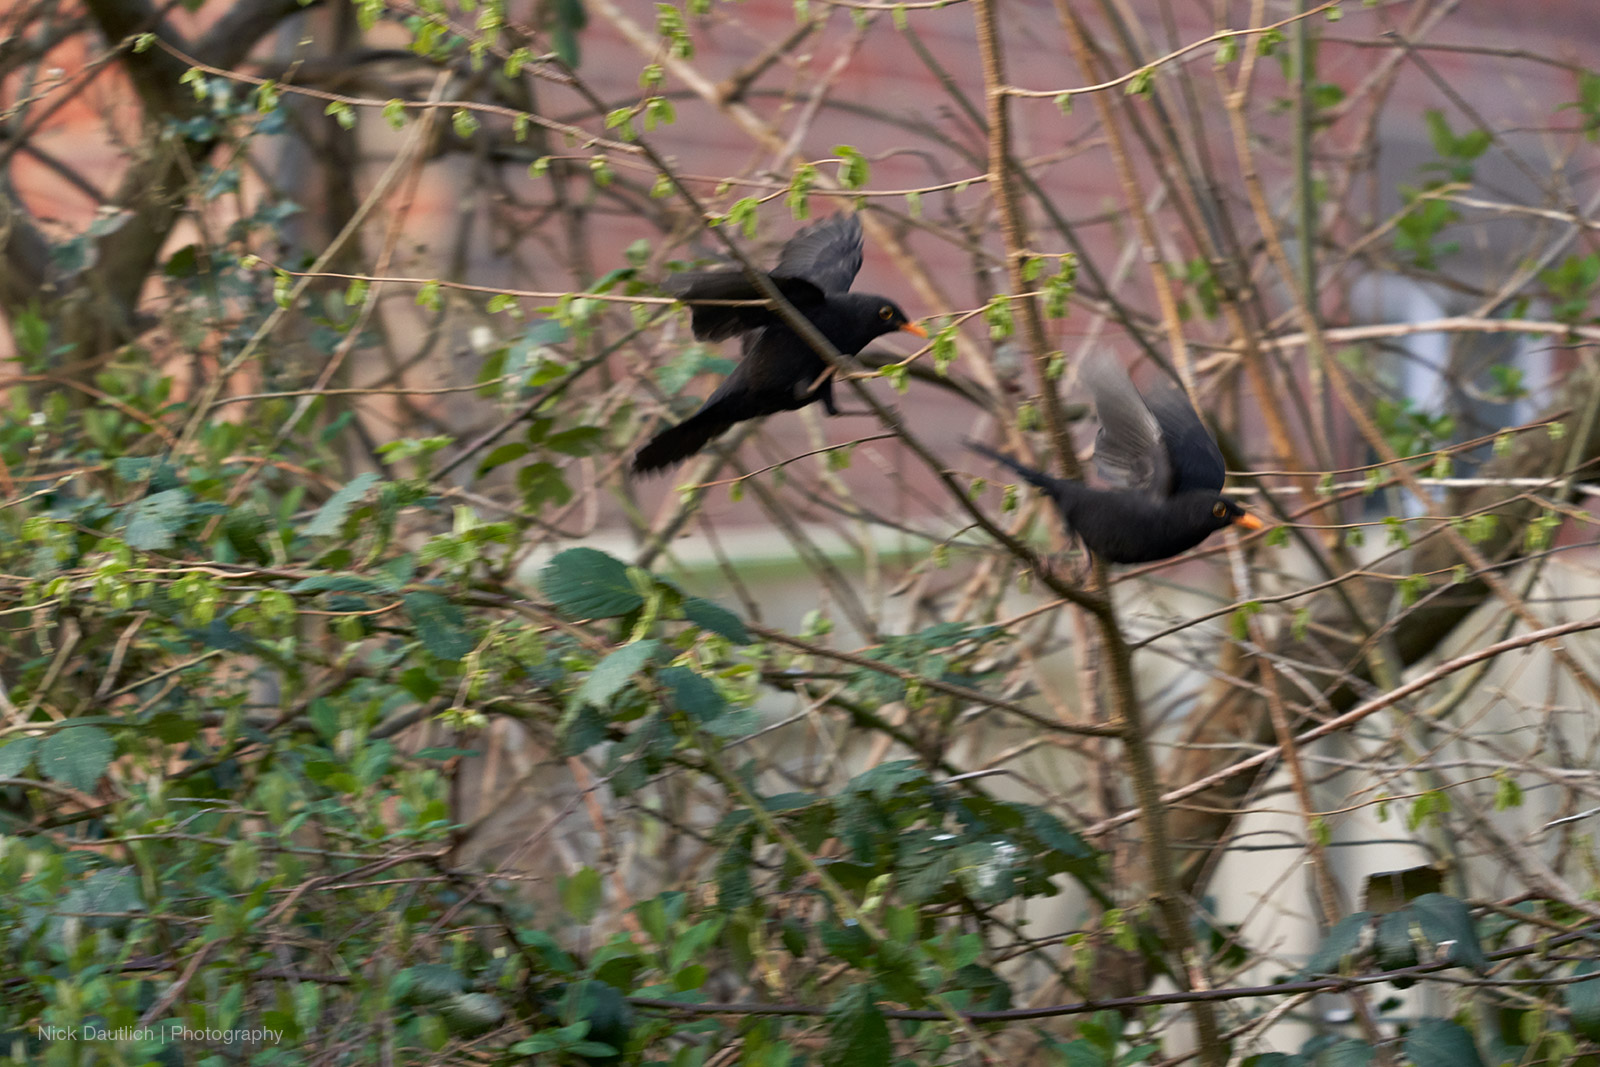 Blackbirds out of focus - too slow shutter speed